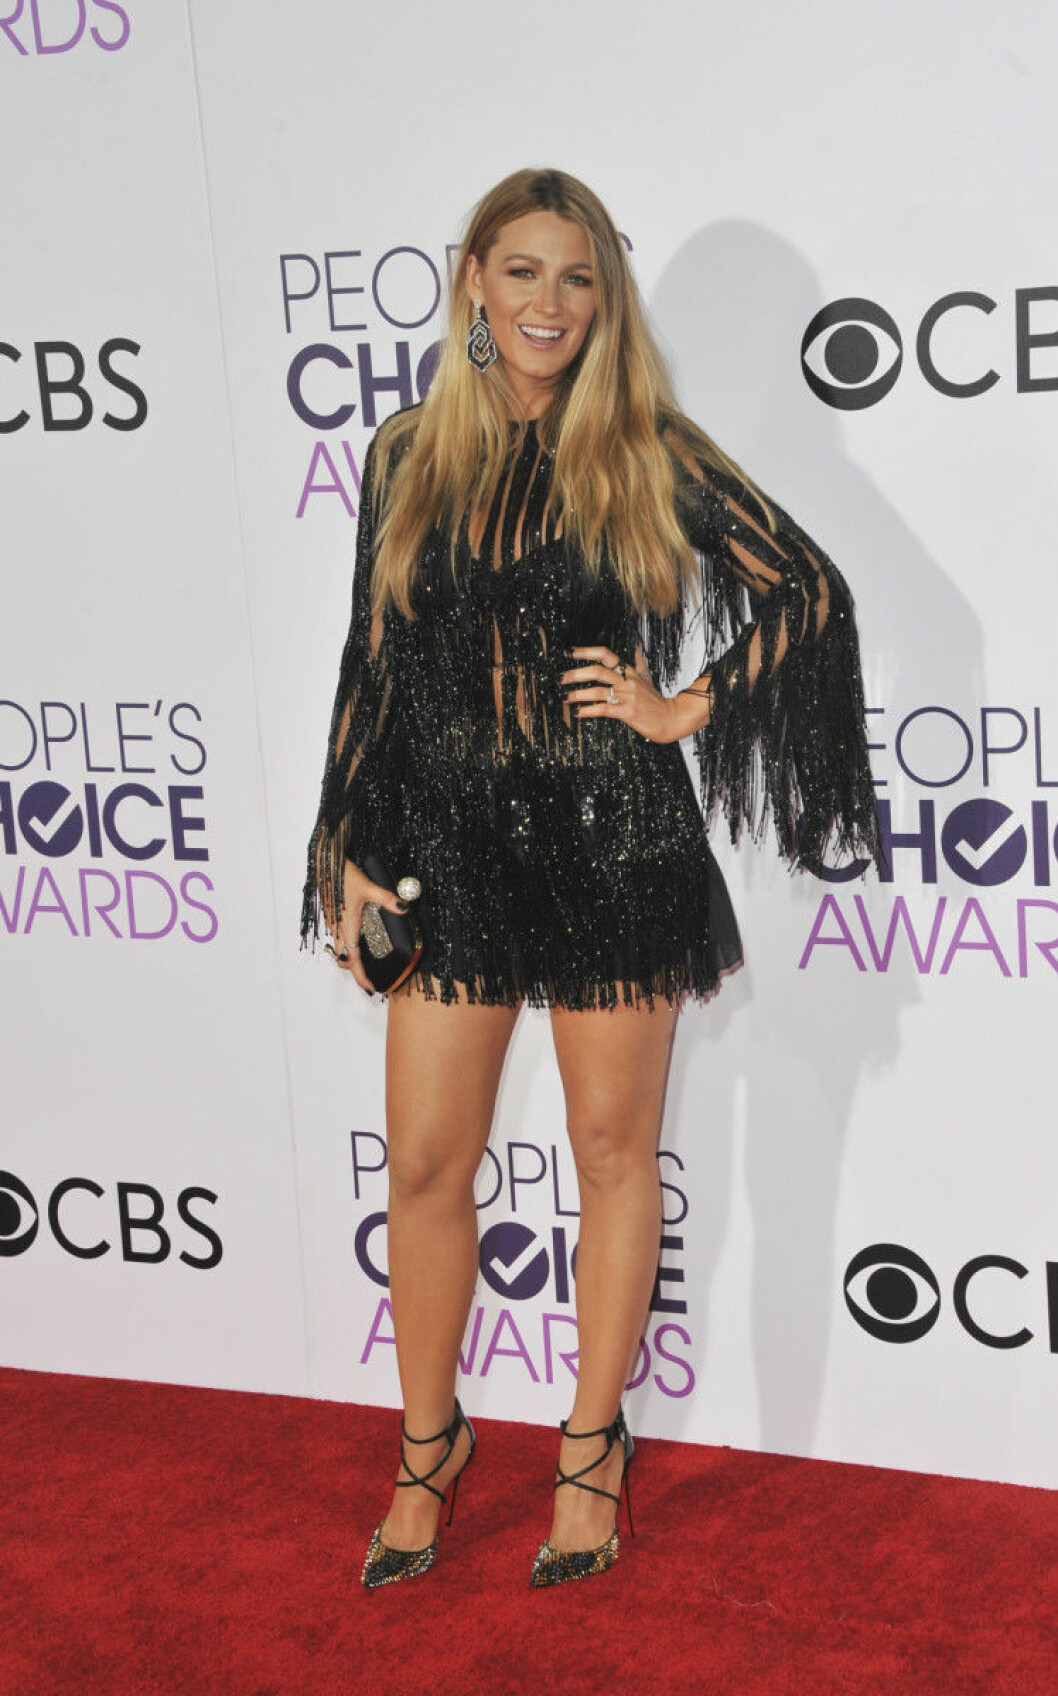 People's Choice Awards 2017 arrivals Featuring: Blake Lively Where: Los Angeles, California, United States When: 19 Jan 2017 Credit: Apega/WENN.com